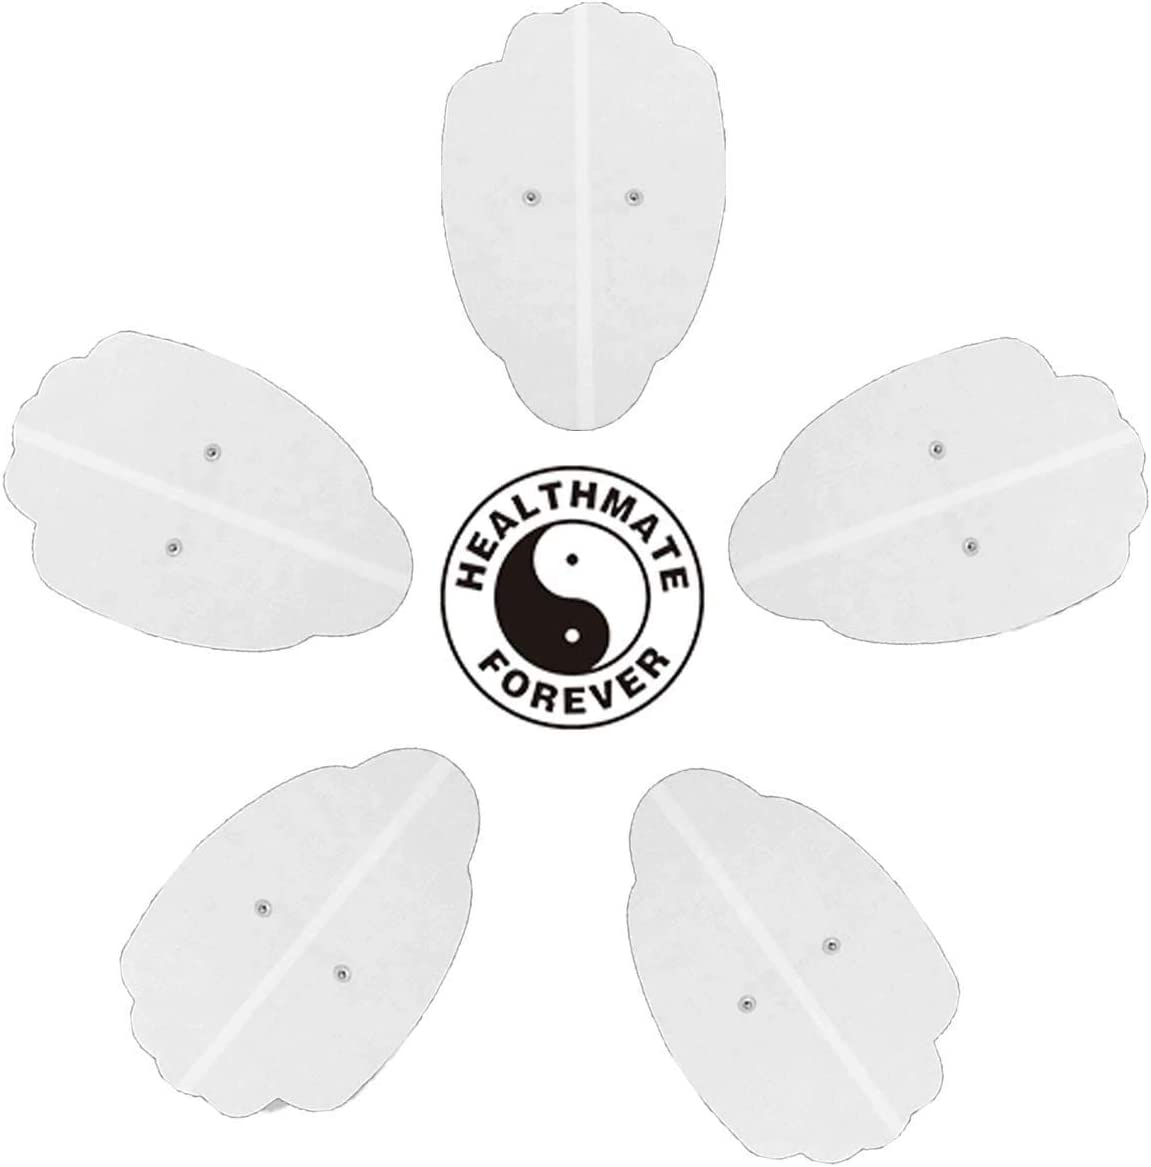 HealthmateForever New product! New type 5 pcs XXL White Hand Replacement Snap-On Large special price